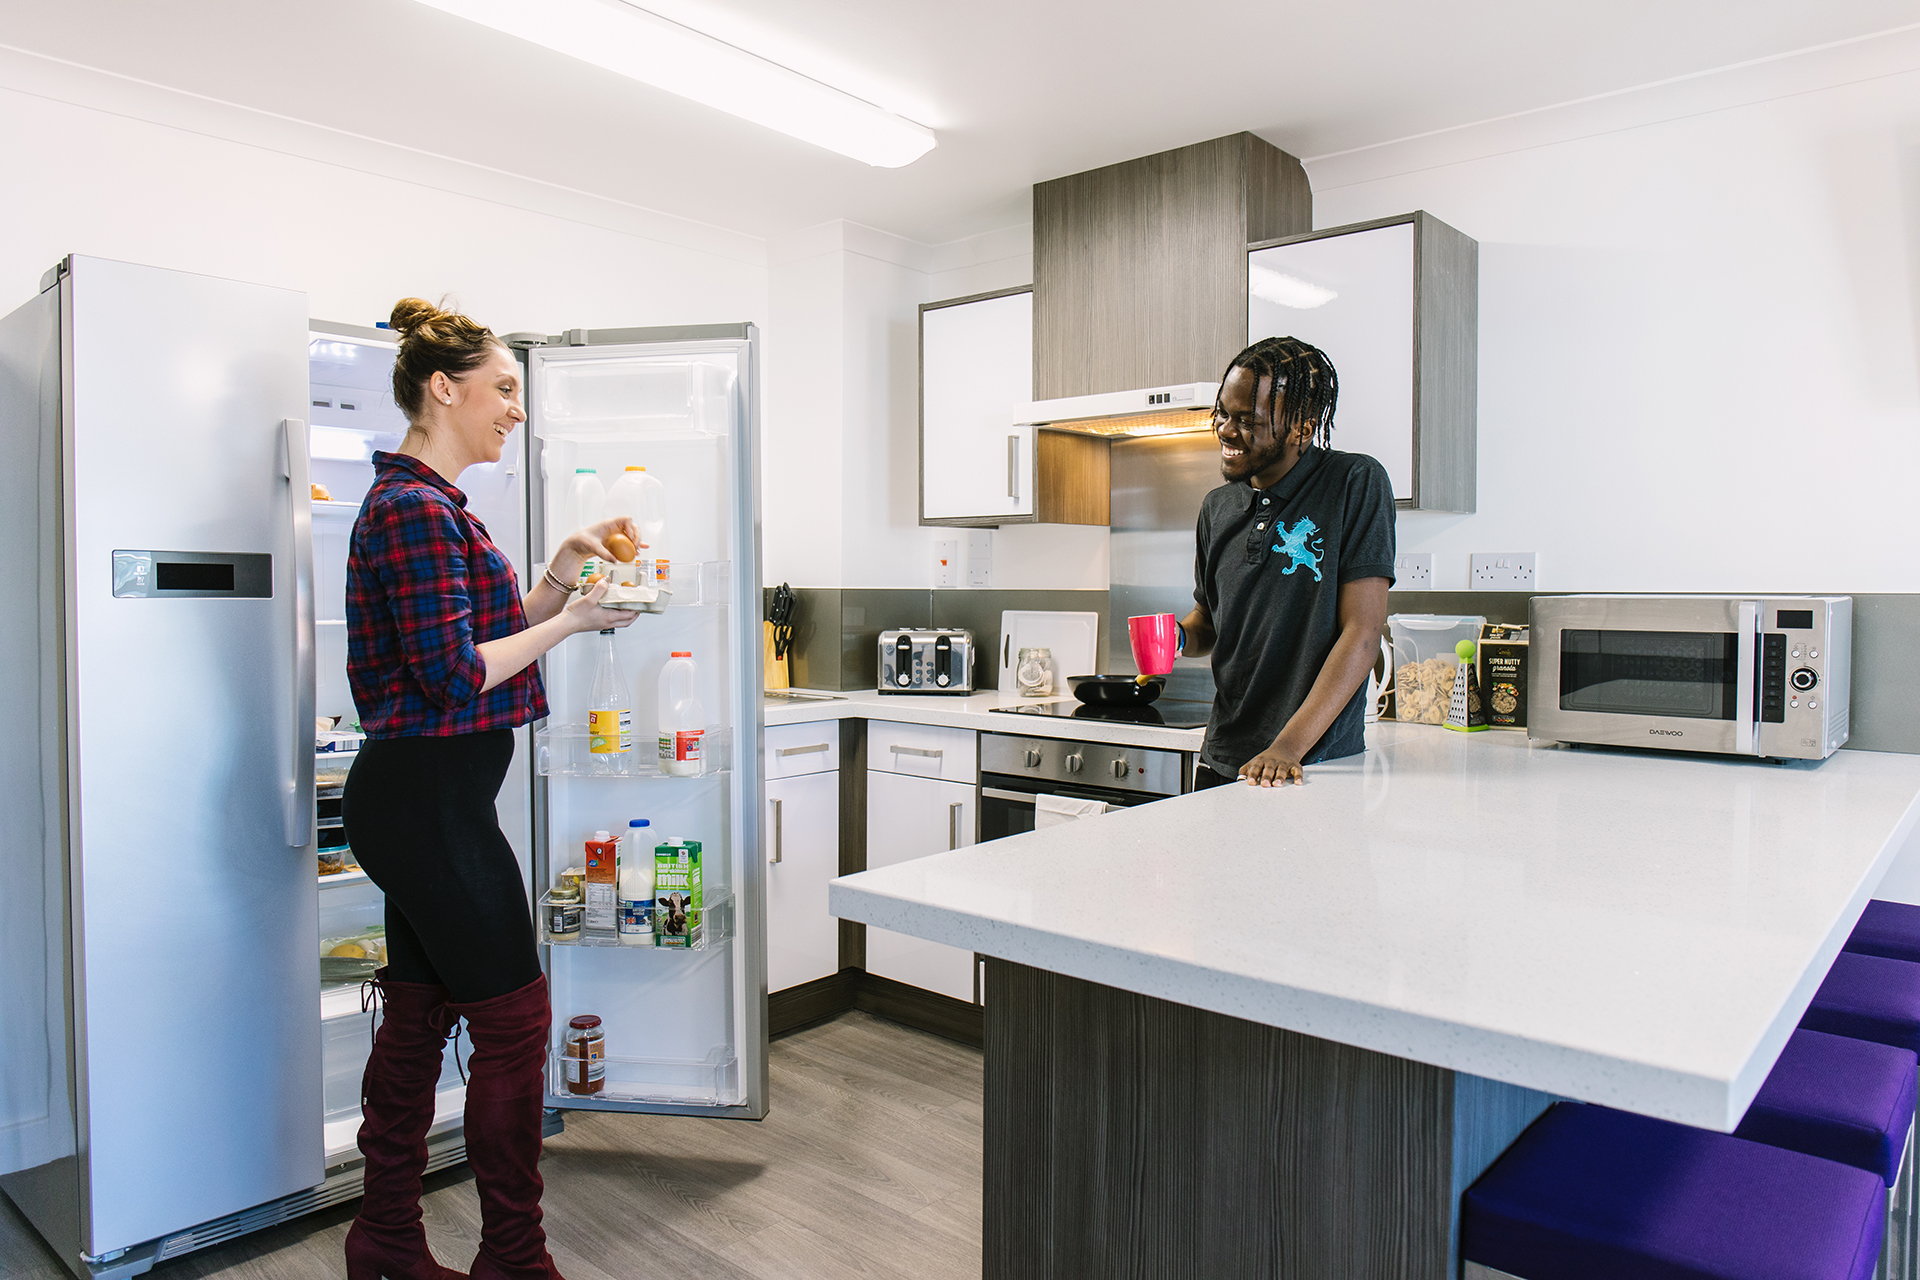 Students talking and eating in INTO Manchester shared kitchen